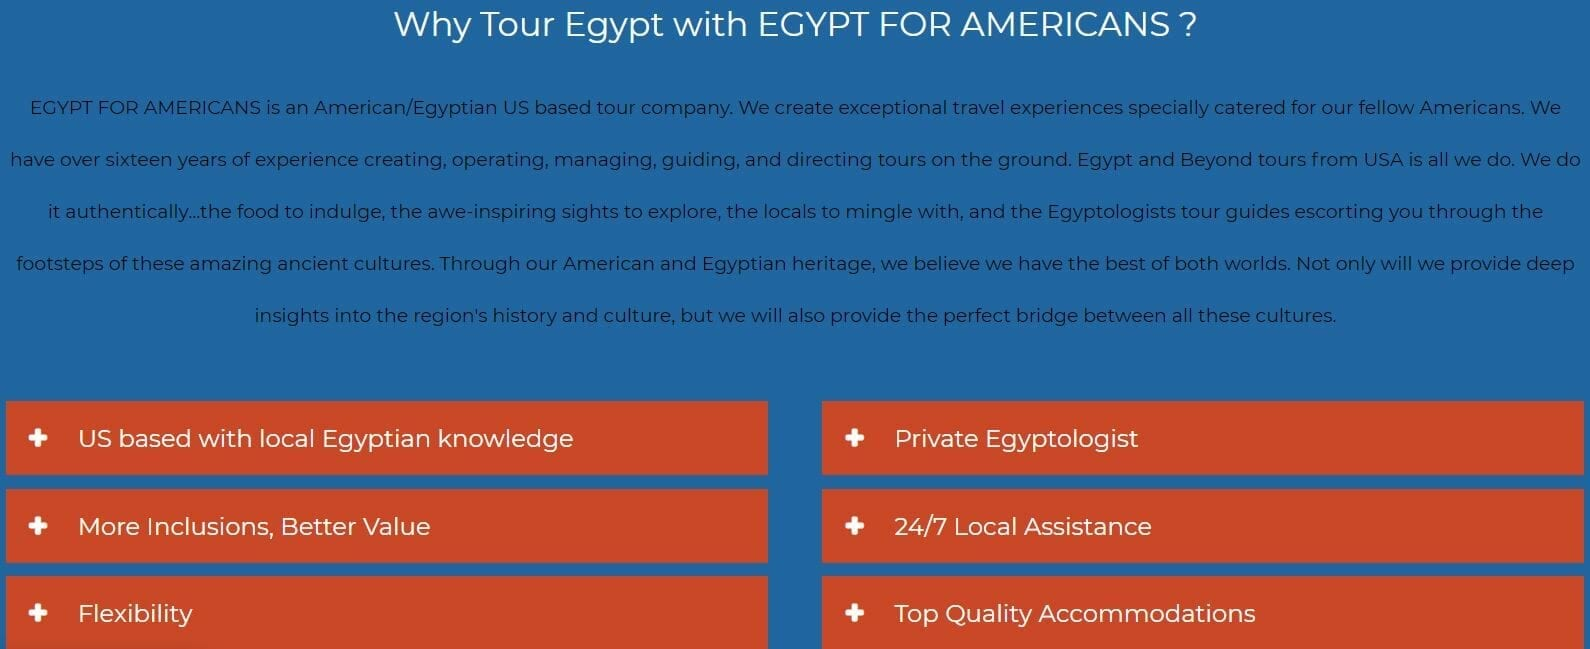 Why tour Egypt for Americans